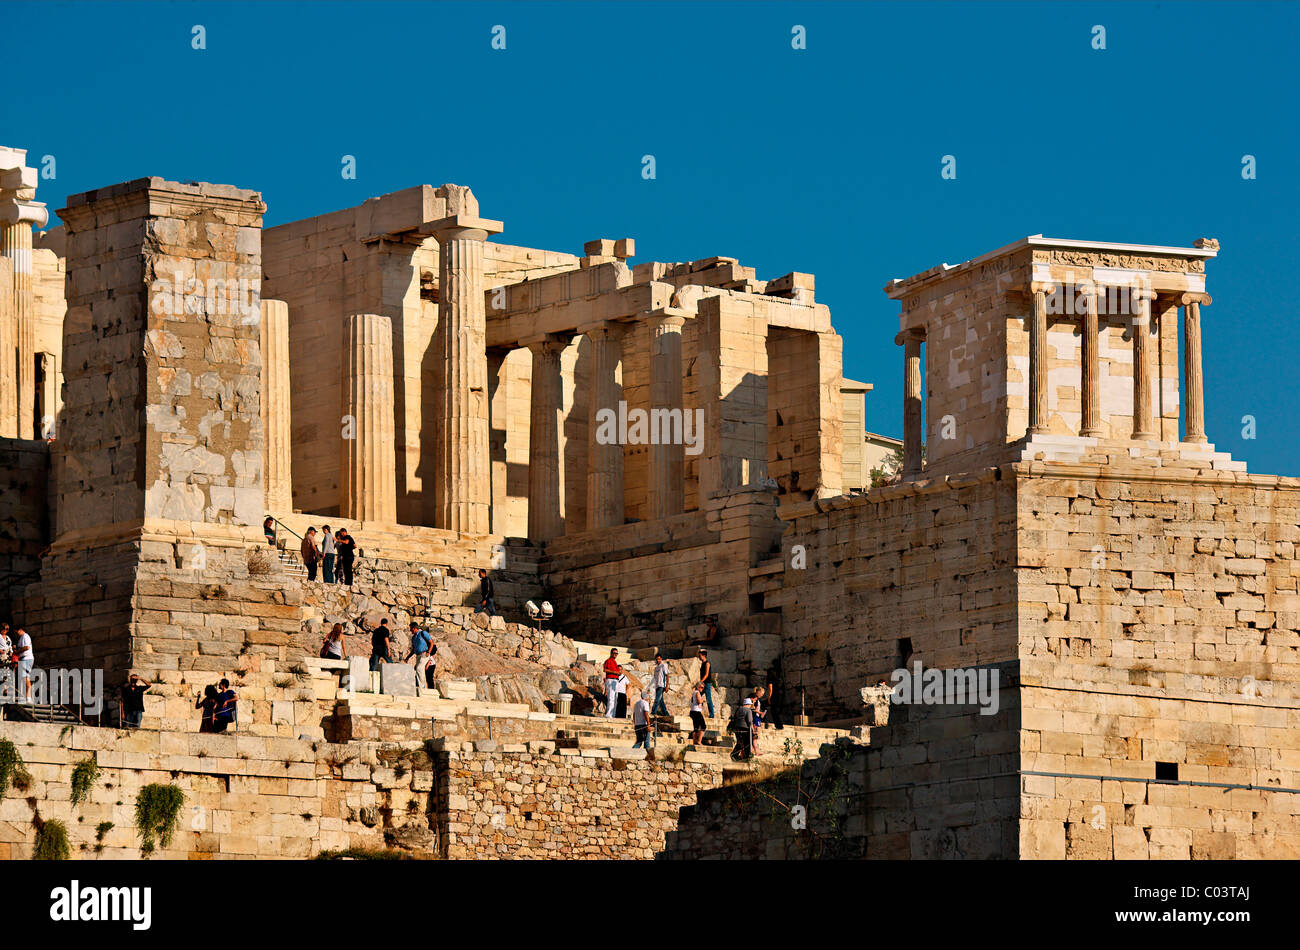 The Propylaea of the Acropolis of Athens with the temple of Athena Nike on the upper right side. Athens, Greece Stock Photo